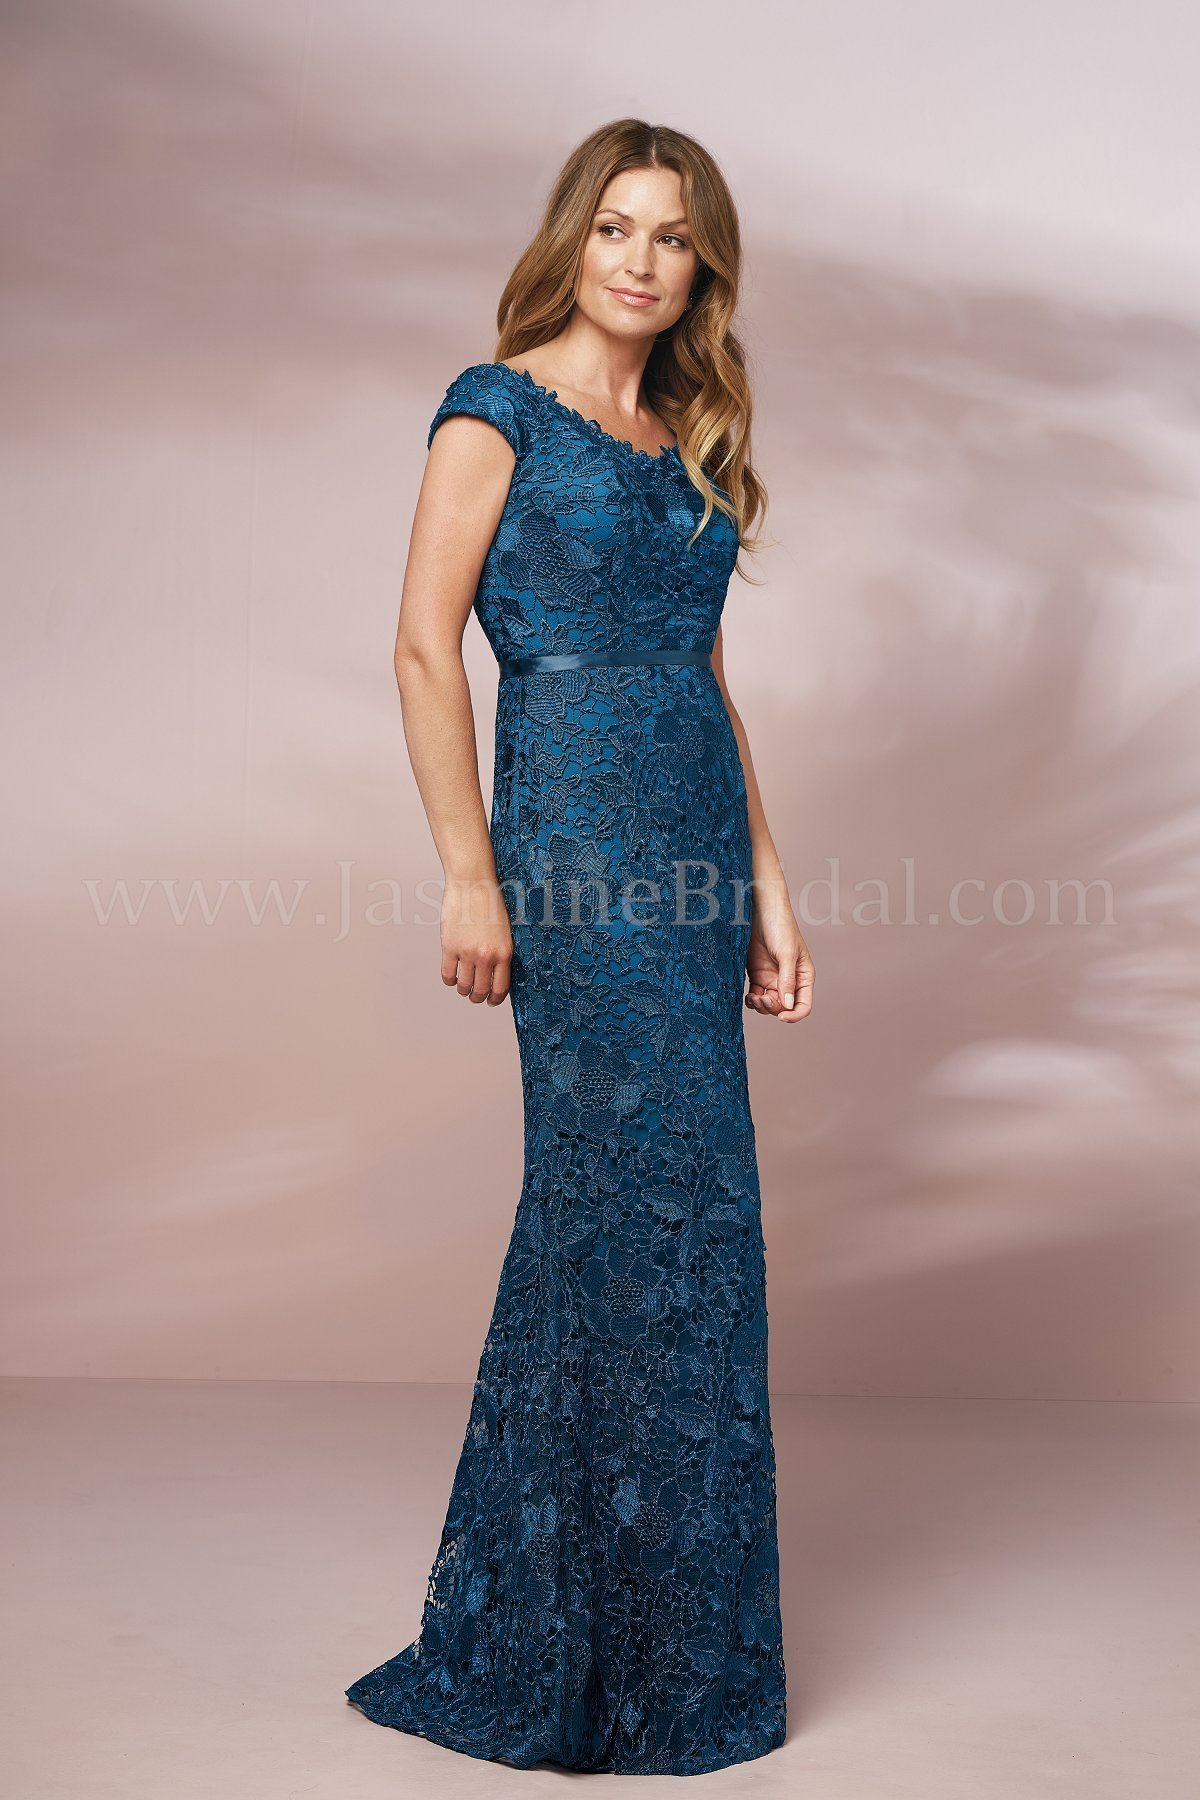 mother-of-the-bride-dresses-J205018-F